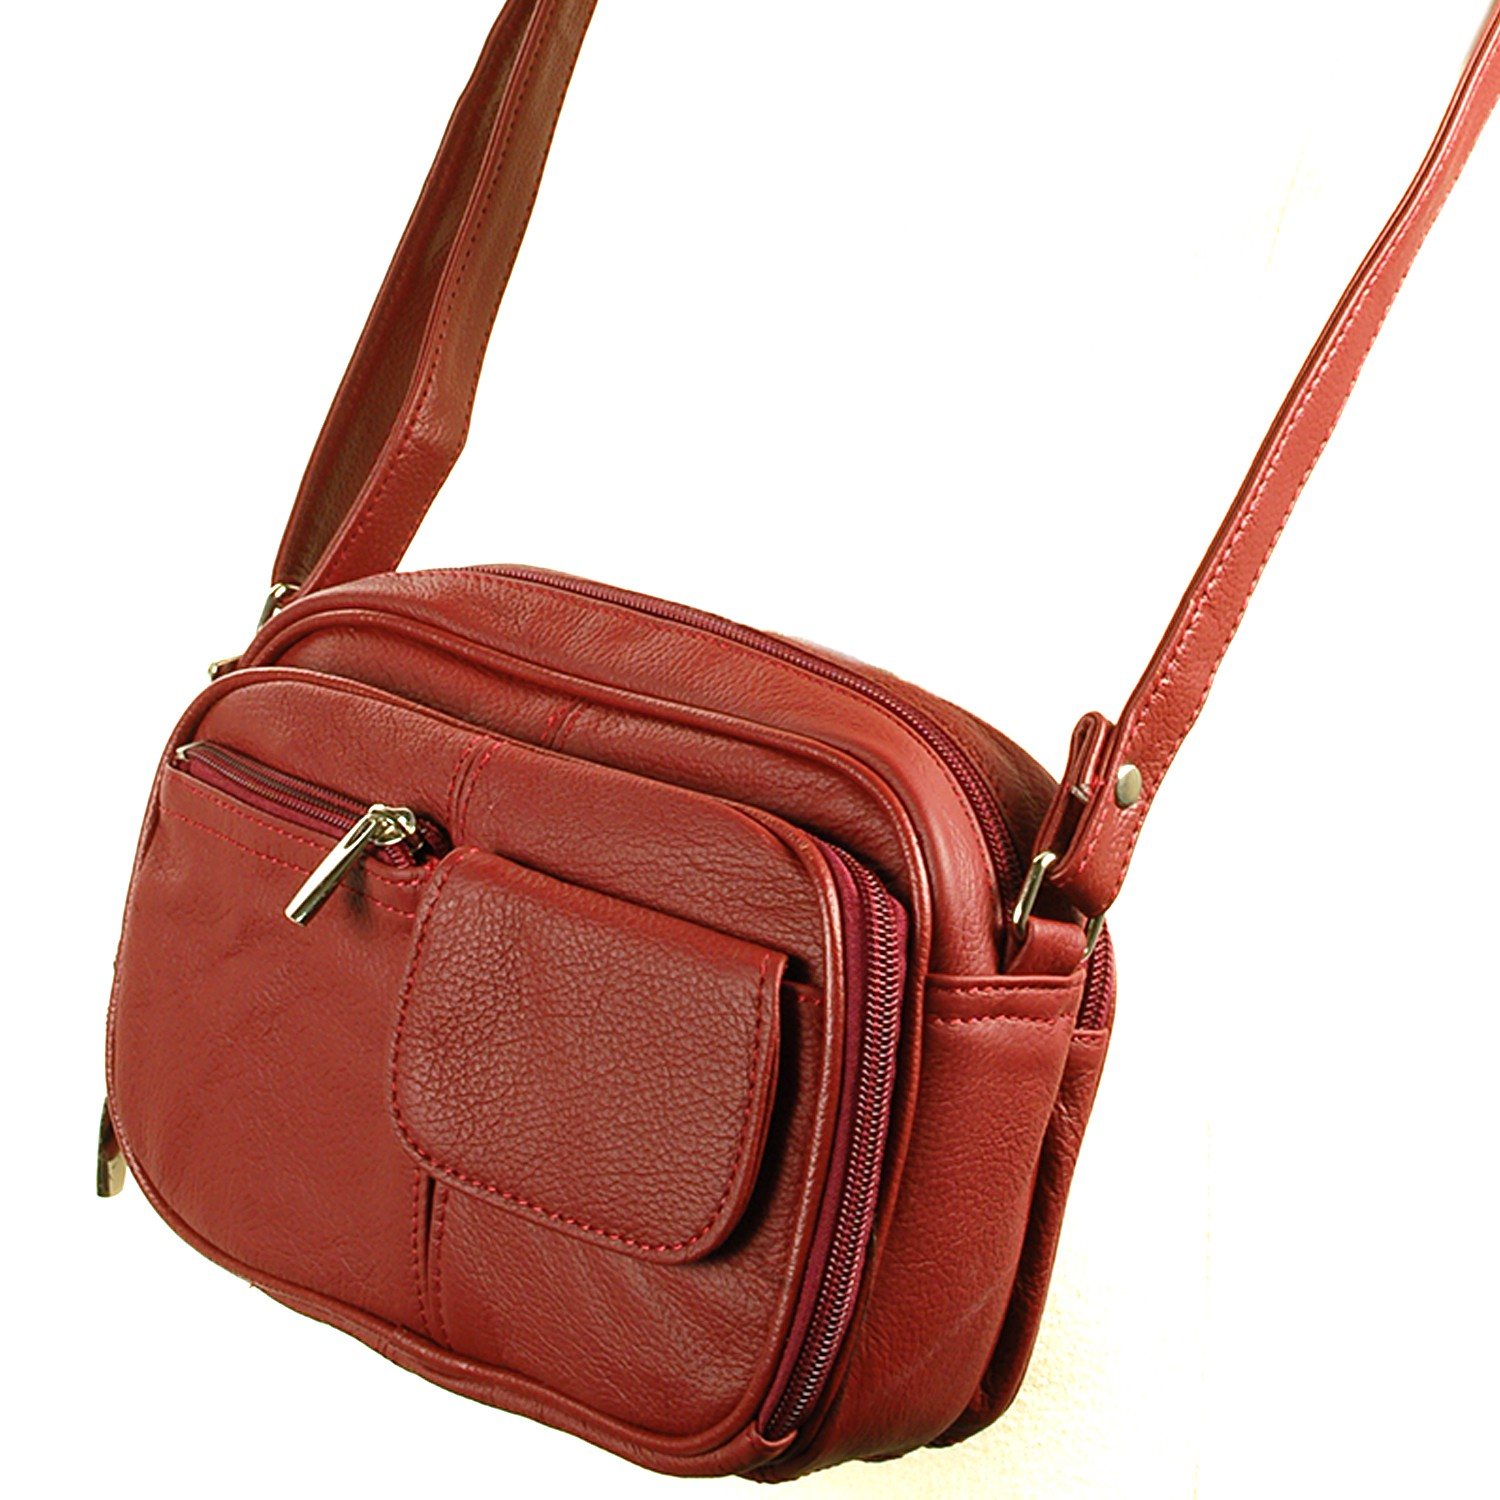 About Shoulder Bags As the name suggests, shoulder bags are carried over the shoulder by a medium or long length strap. The category includes handbags in variety of shapes including hobo bags, satchels, and totes.